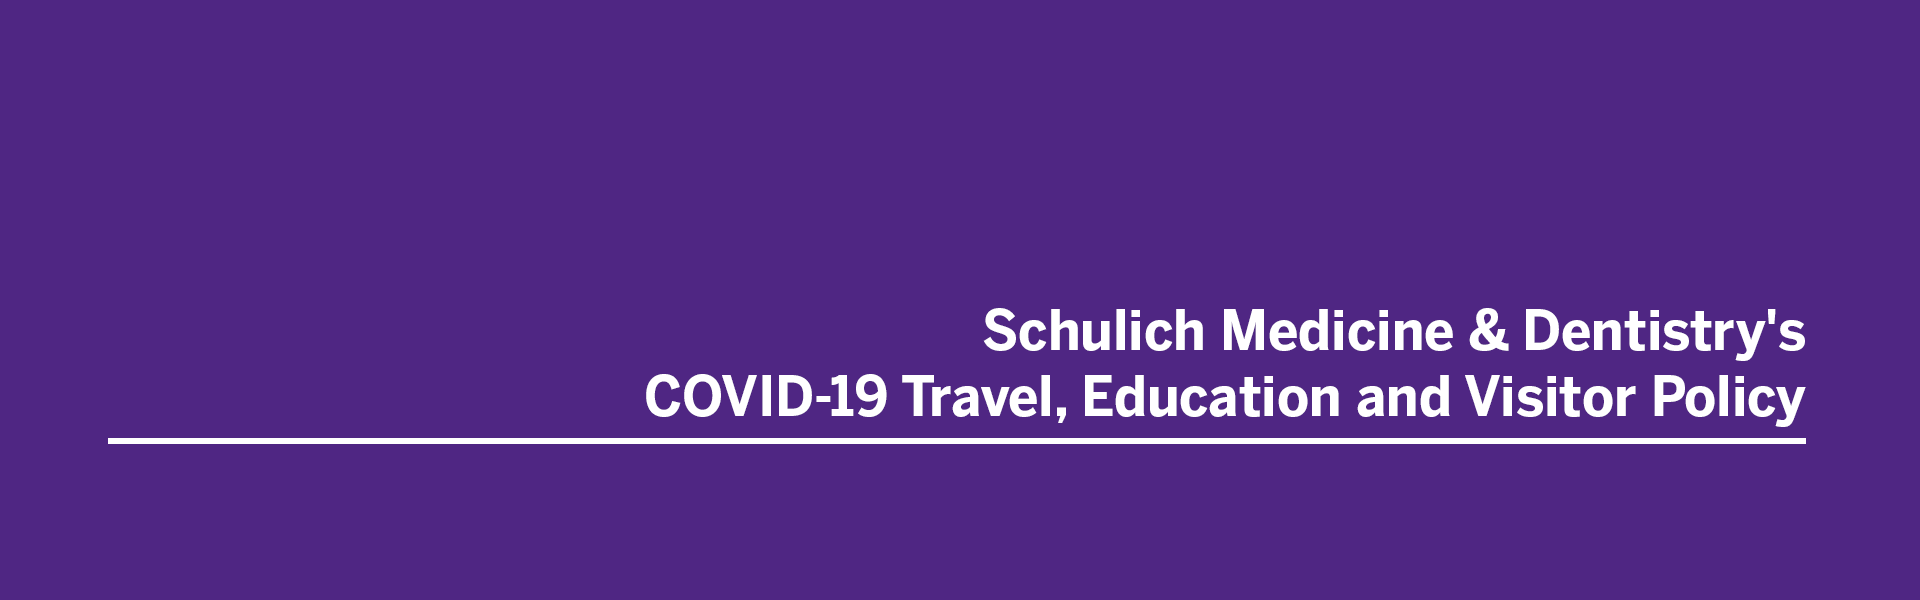 Schulich Medicine & Dentistry's COVID-19 Travel, Education and Visitor Policy